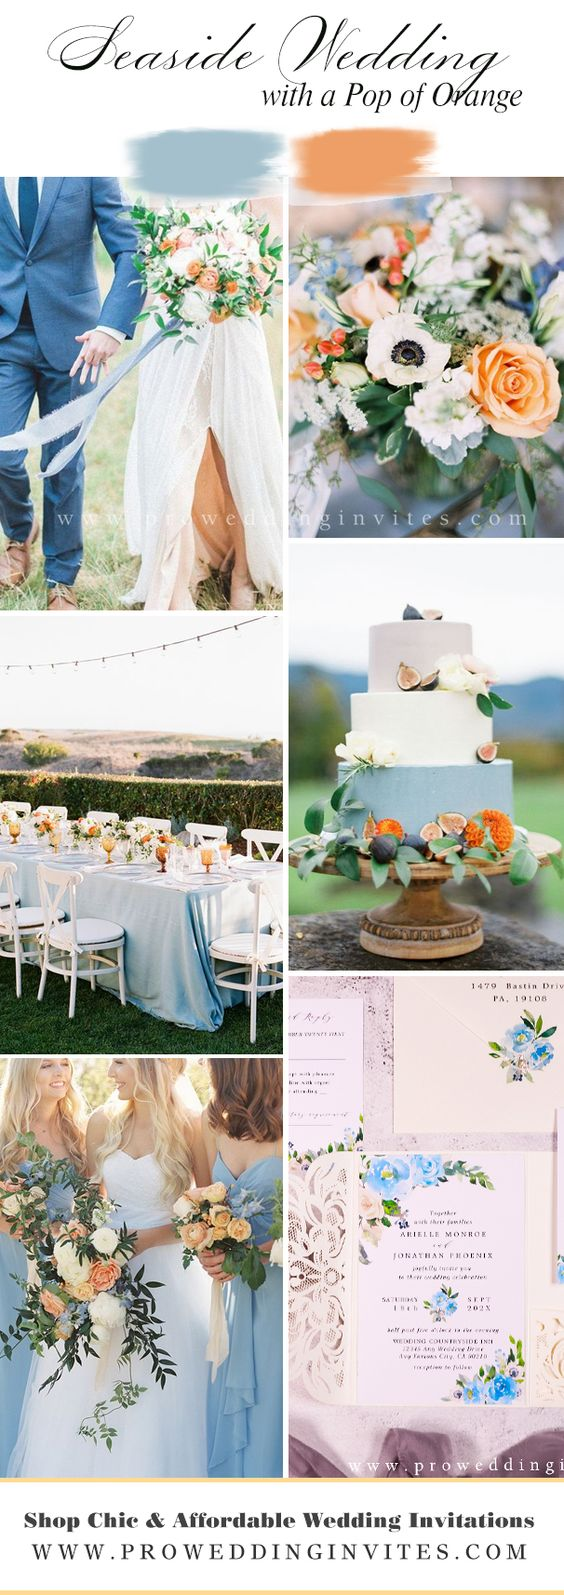 Adorable Shades of Blue Wedding Color Ideas for 2021